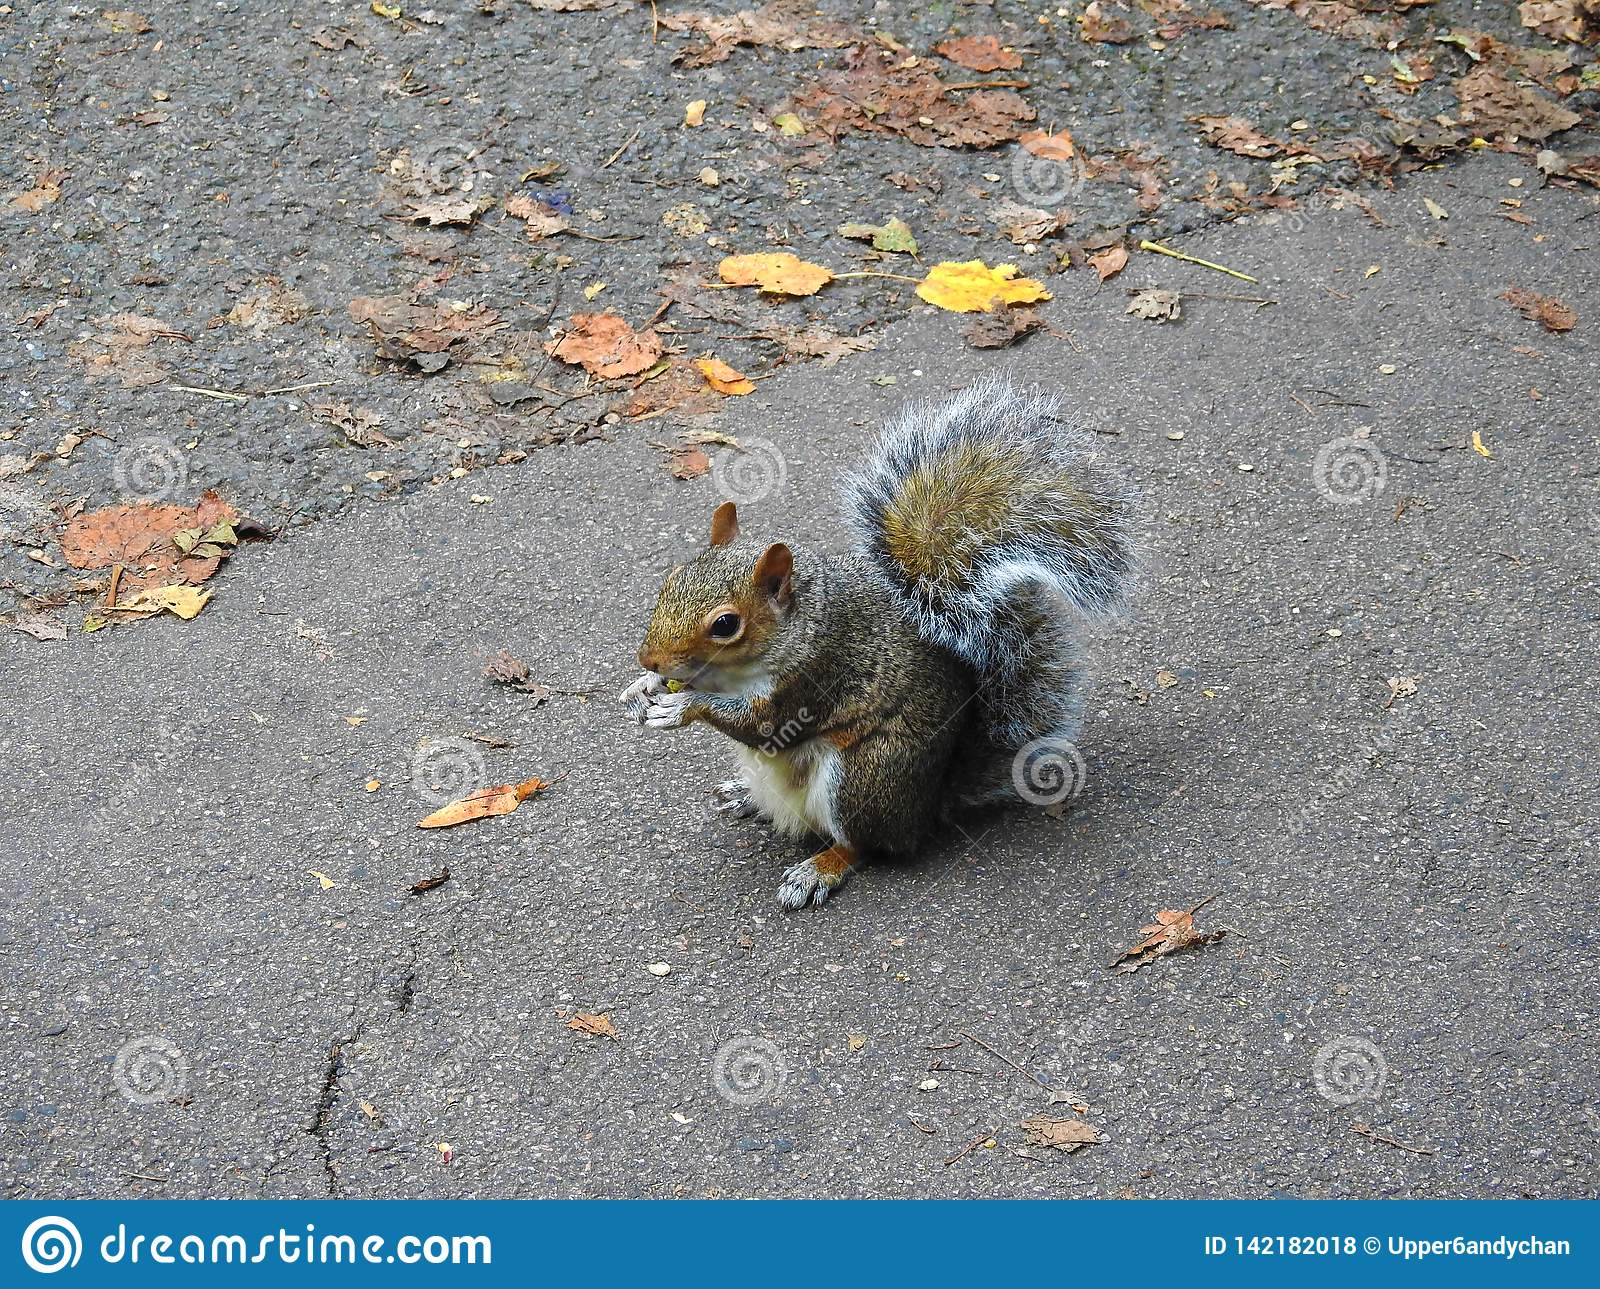 A little squirrel holding and eating a nut in the park